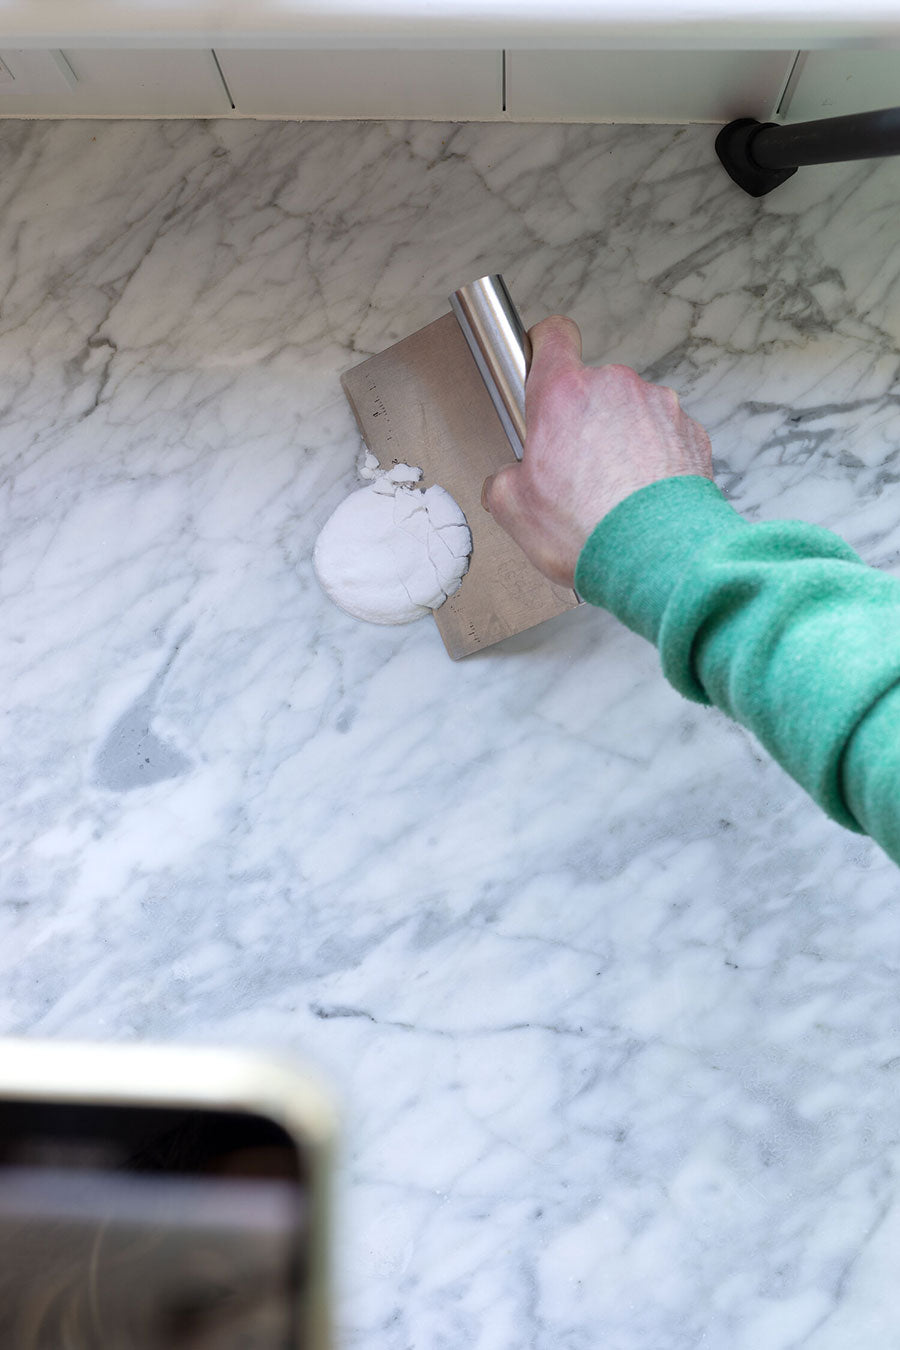 The Grit and Polish demonstrated how a DIY Marble Poultice removed stains from their marble countertop - it's that easy to make yourself!